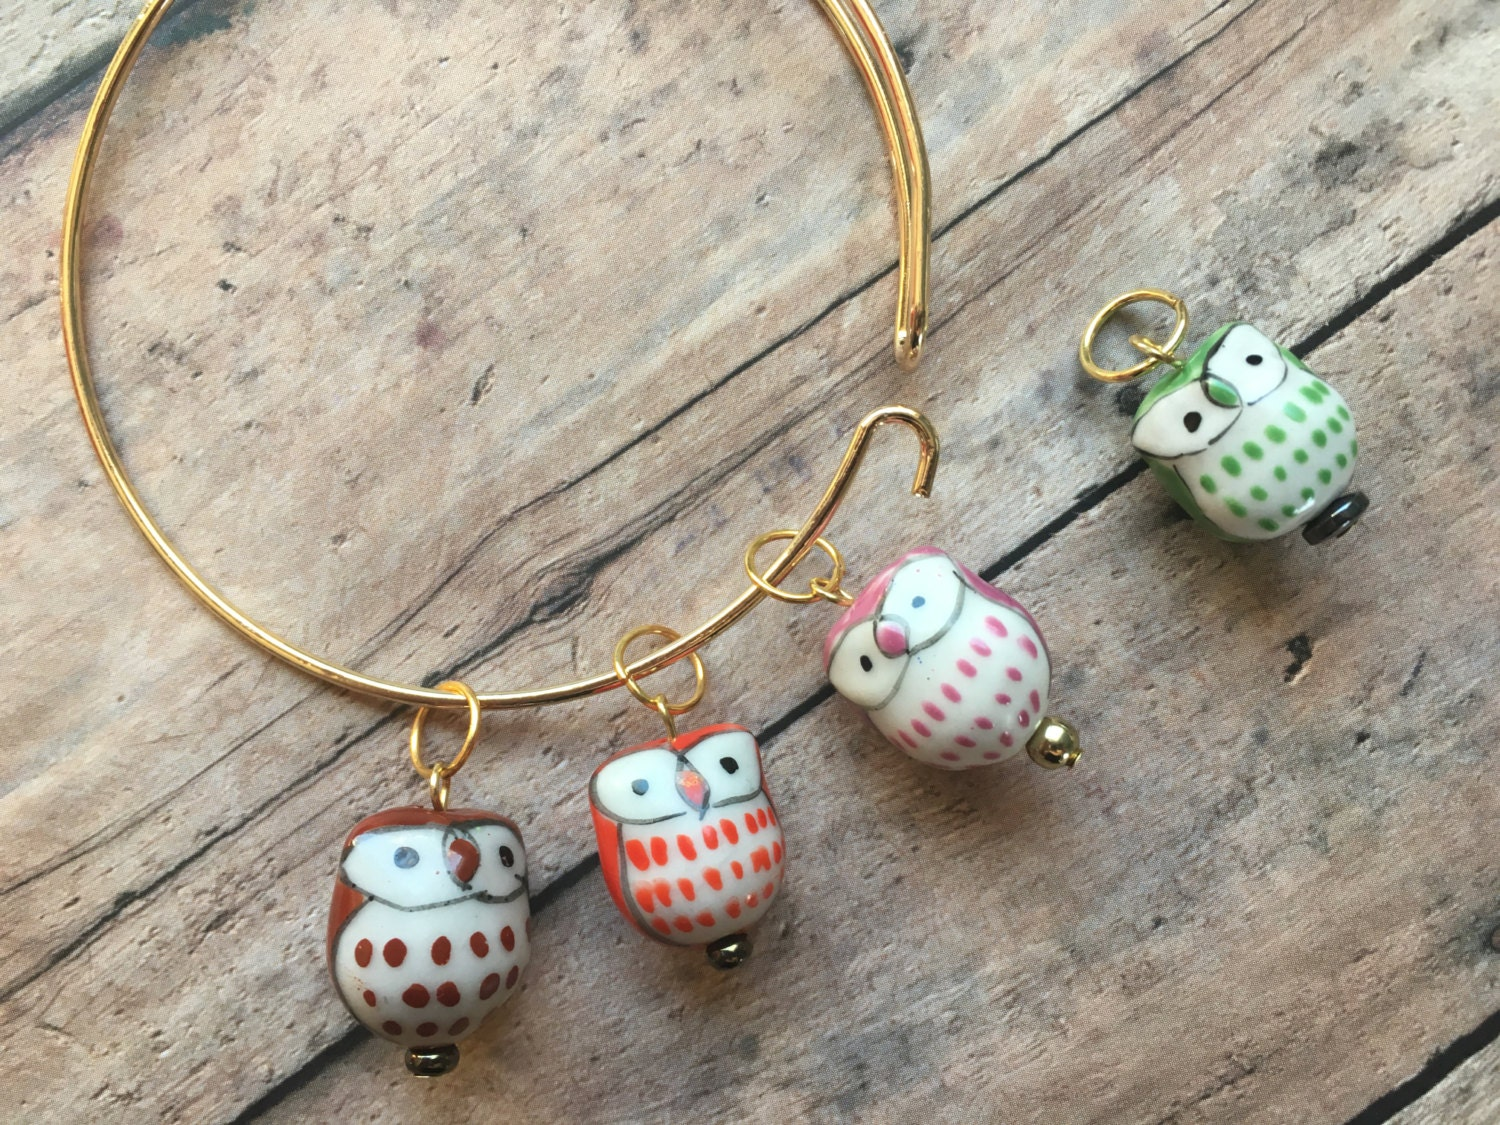 Knitting Markers Etsy : Stitch marker bracelet colorful owls from thesexyknitter